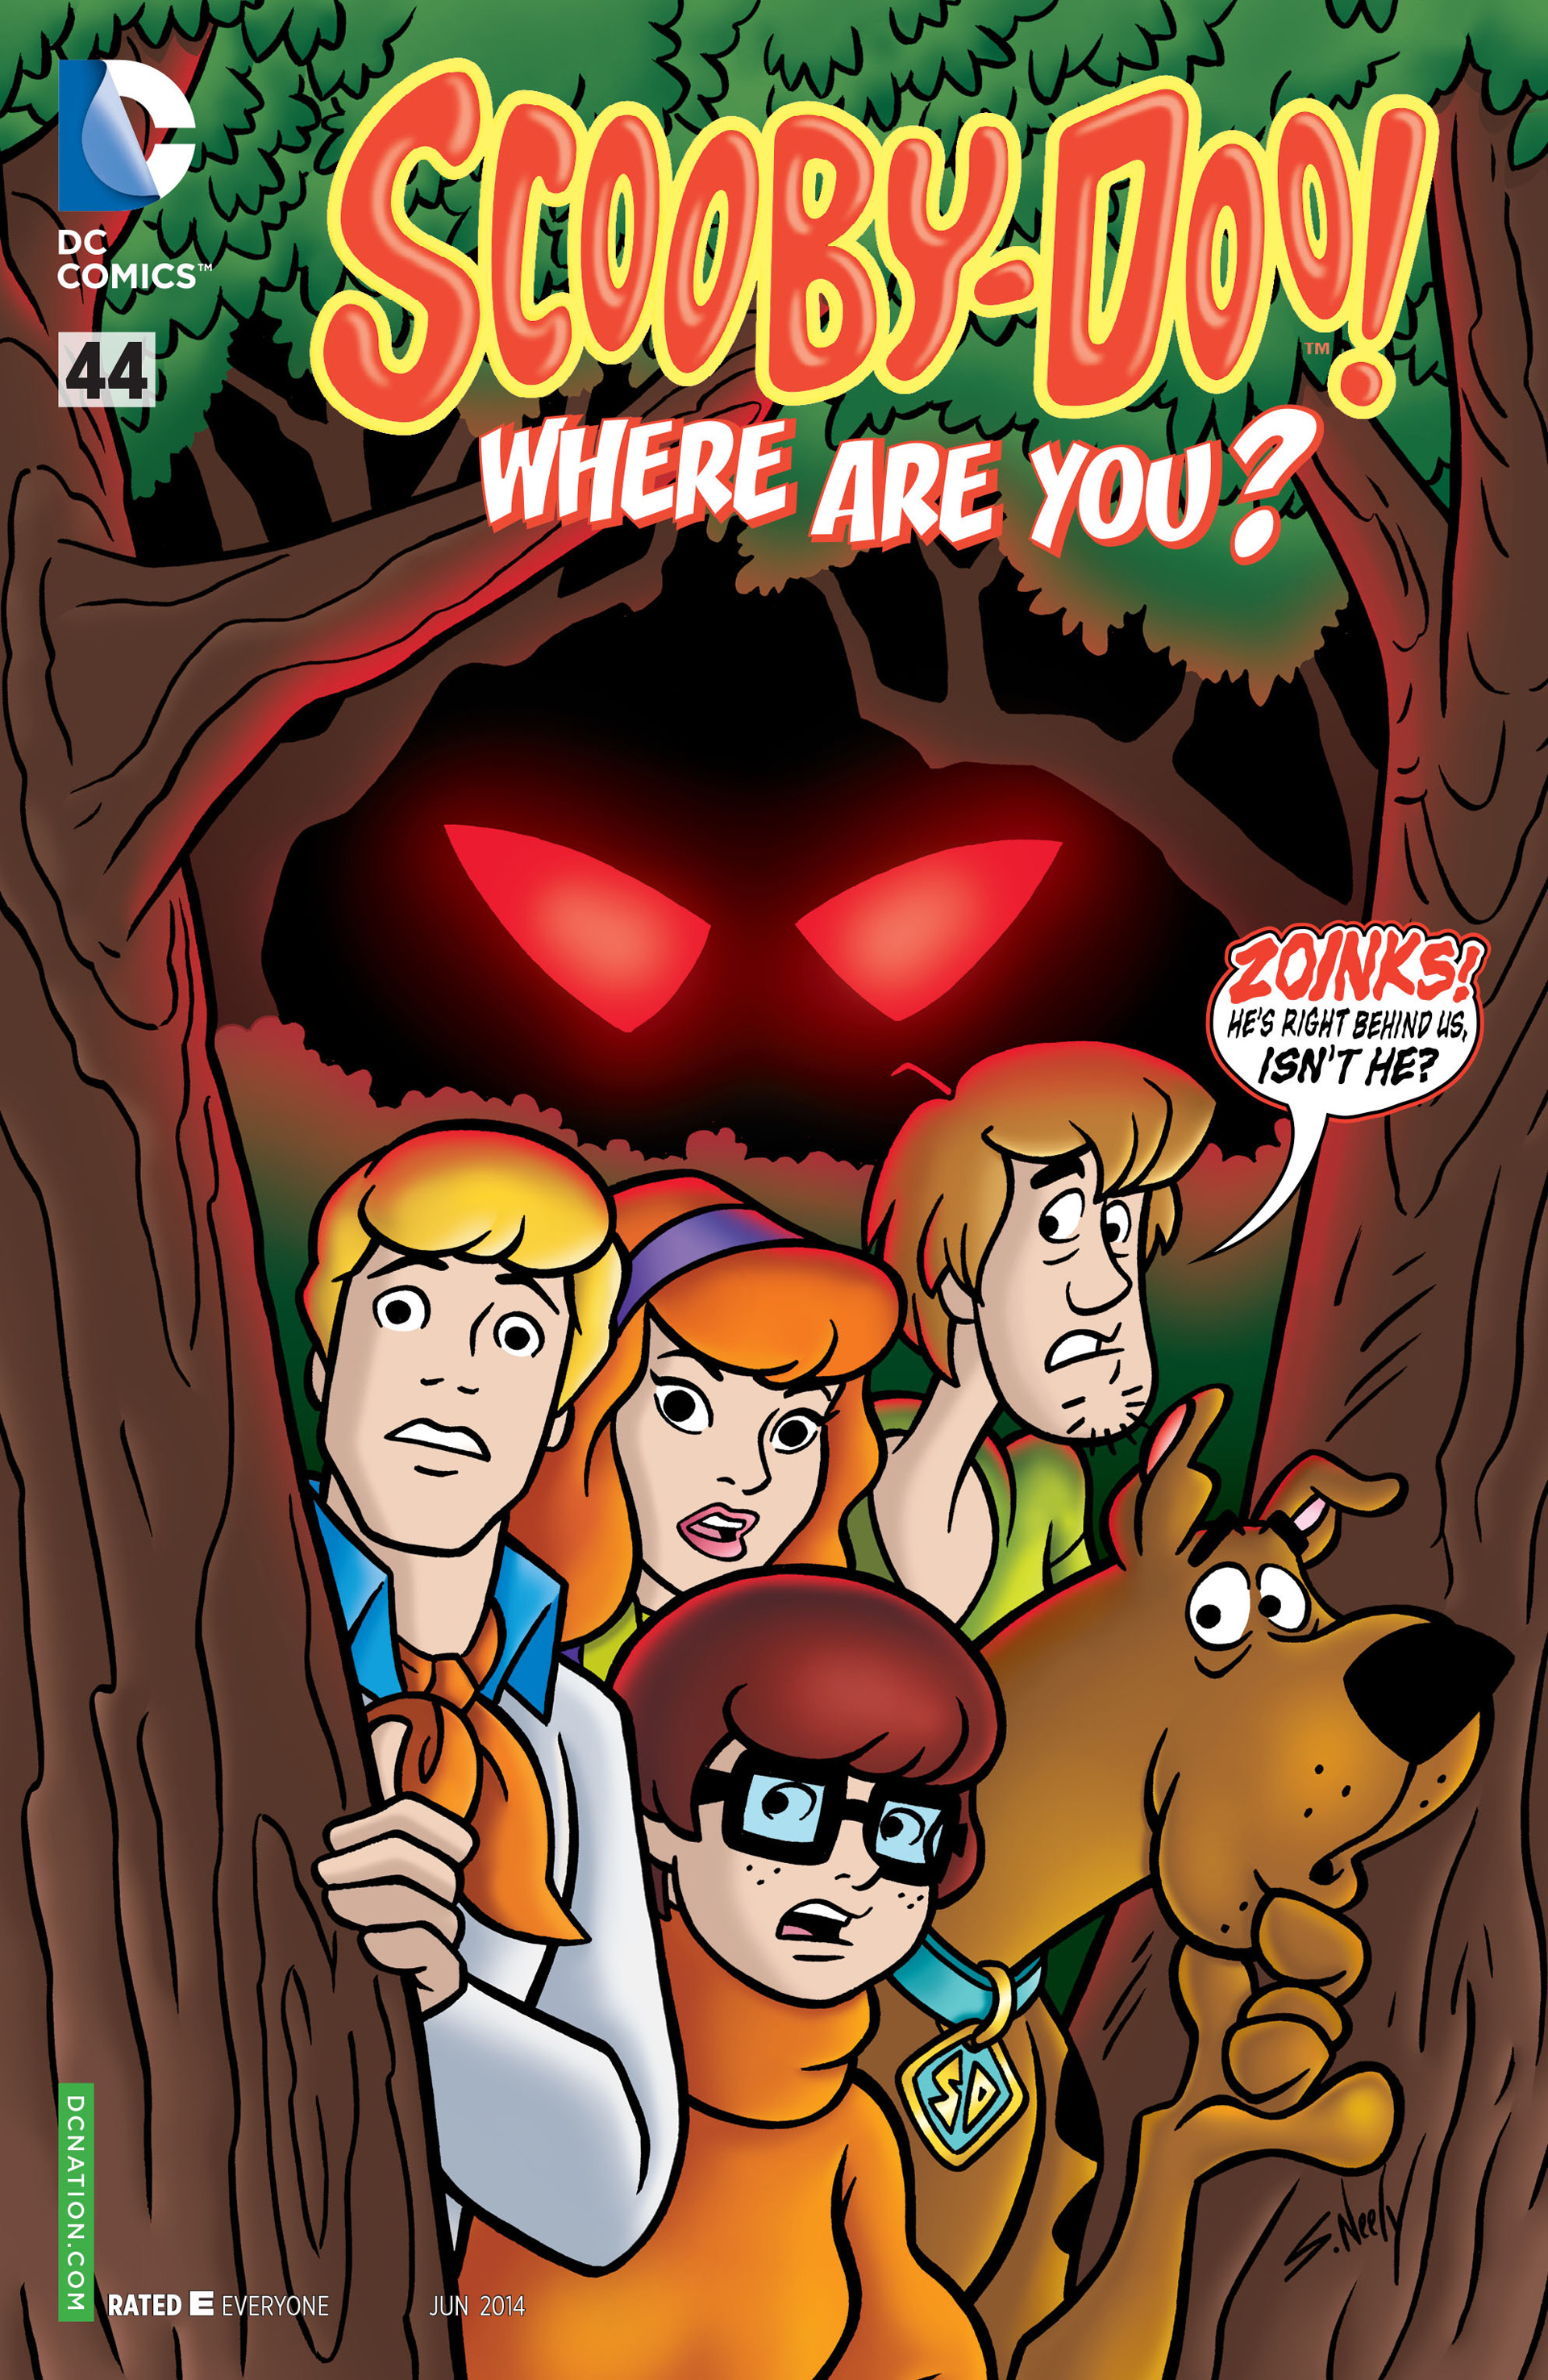 Read online Scooby-Doo: Where Are You? comic -  Issue #44 - 1